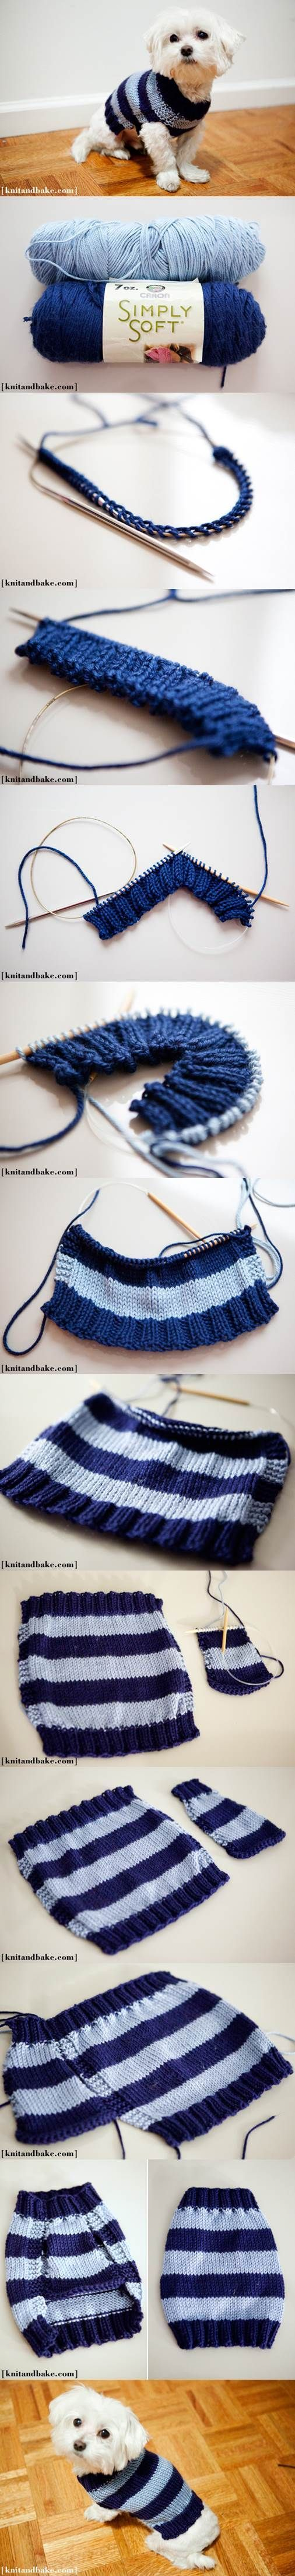 DIY Easy Knitted Dog Sweater 2